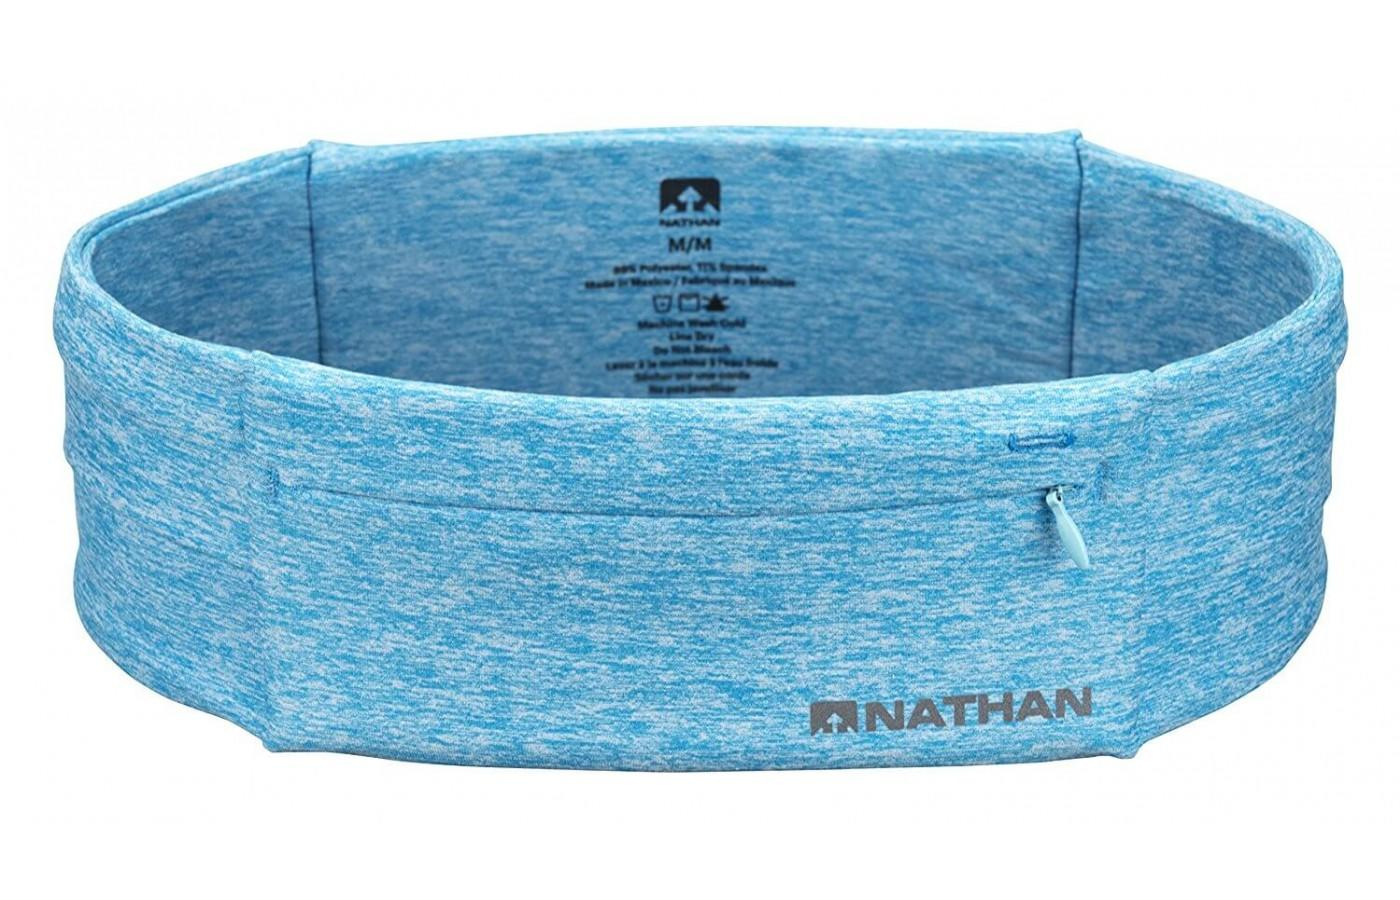 The Nathan Zipster Belt comes in three colors